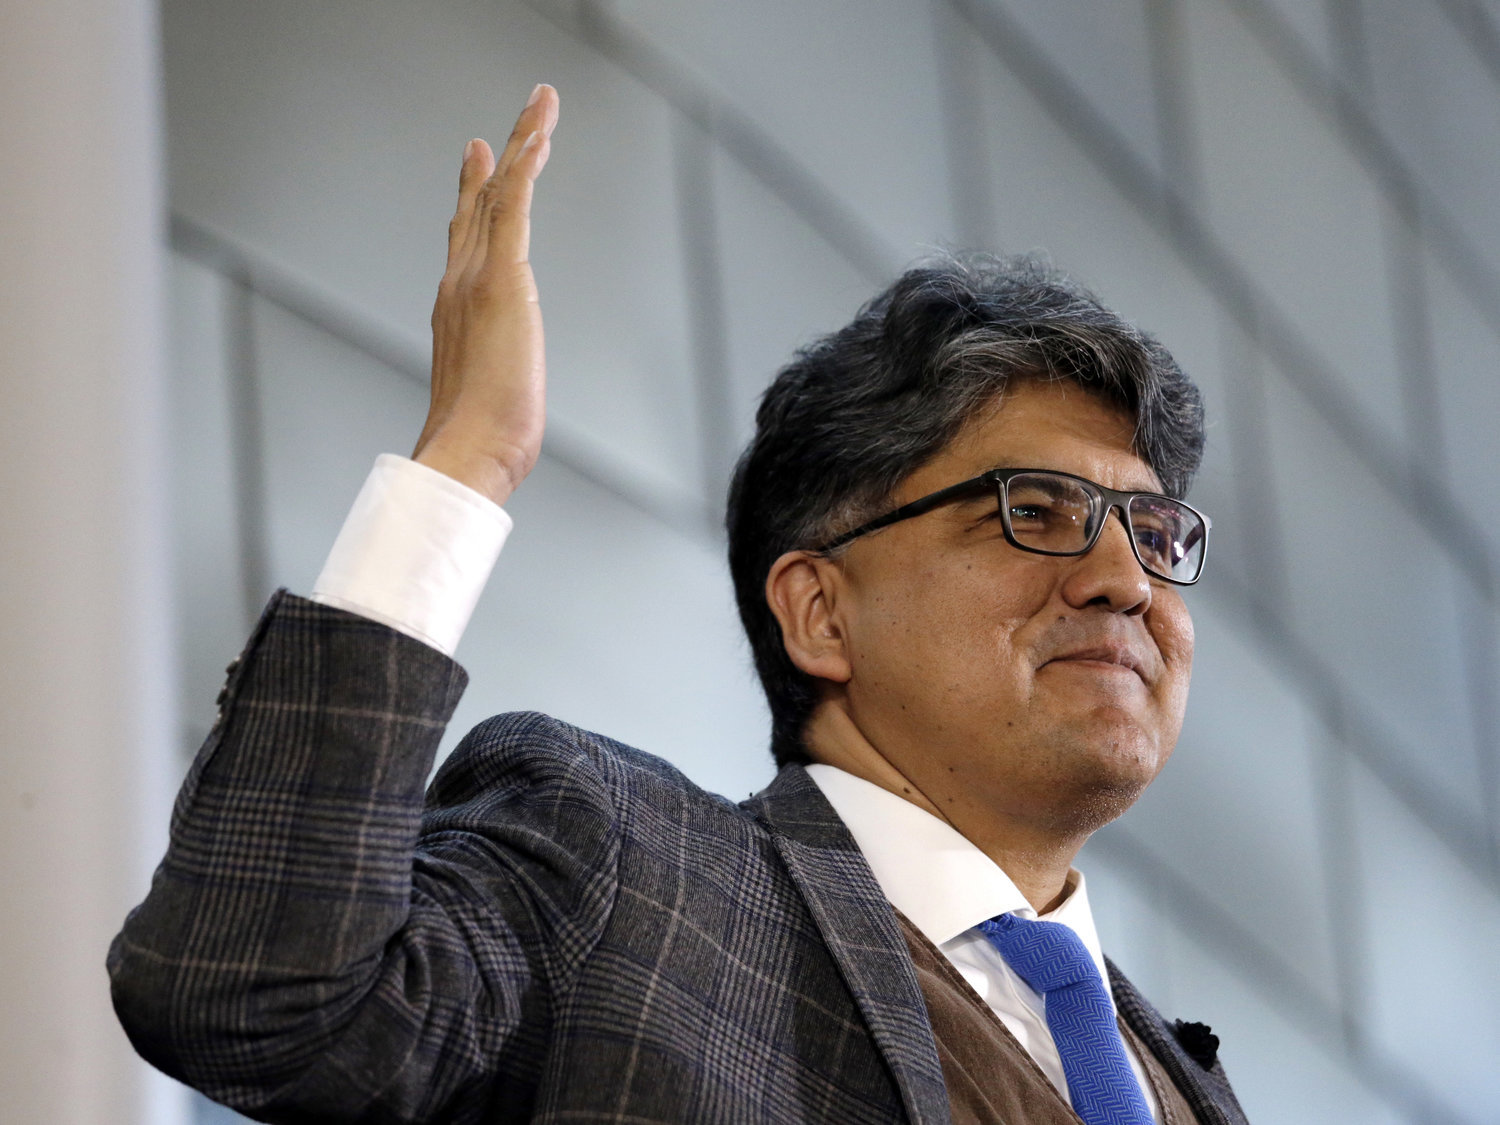 BWW News: SHERMAN ALEXIE Won't Accept Carnegie Medal; Paperback Postponed